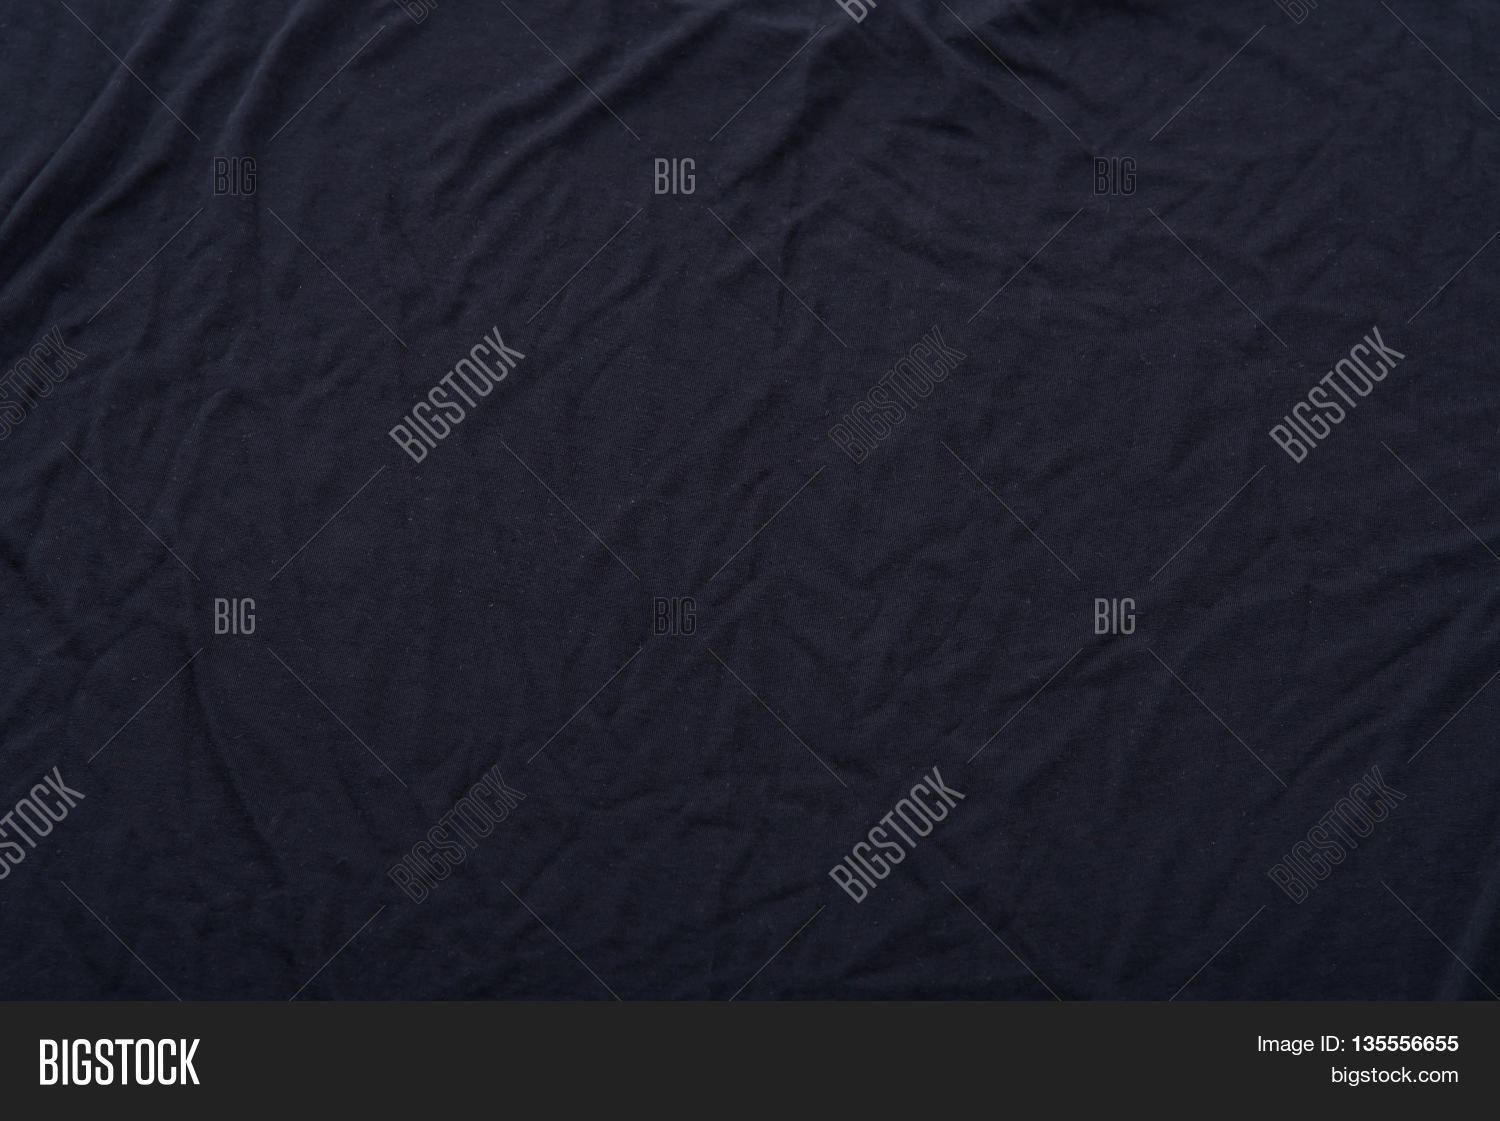 Black bed sheet texture - Close Up Of Wrinkled Black Color Fabric Bed Sheet Texture Background